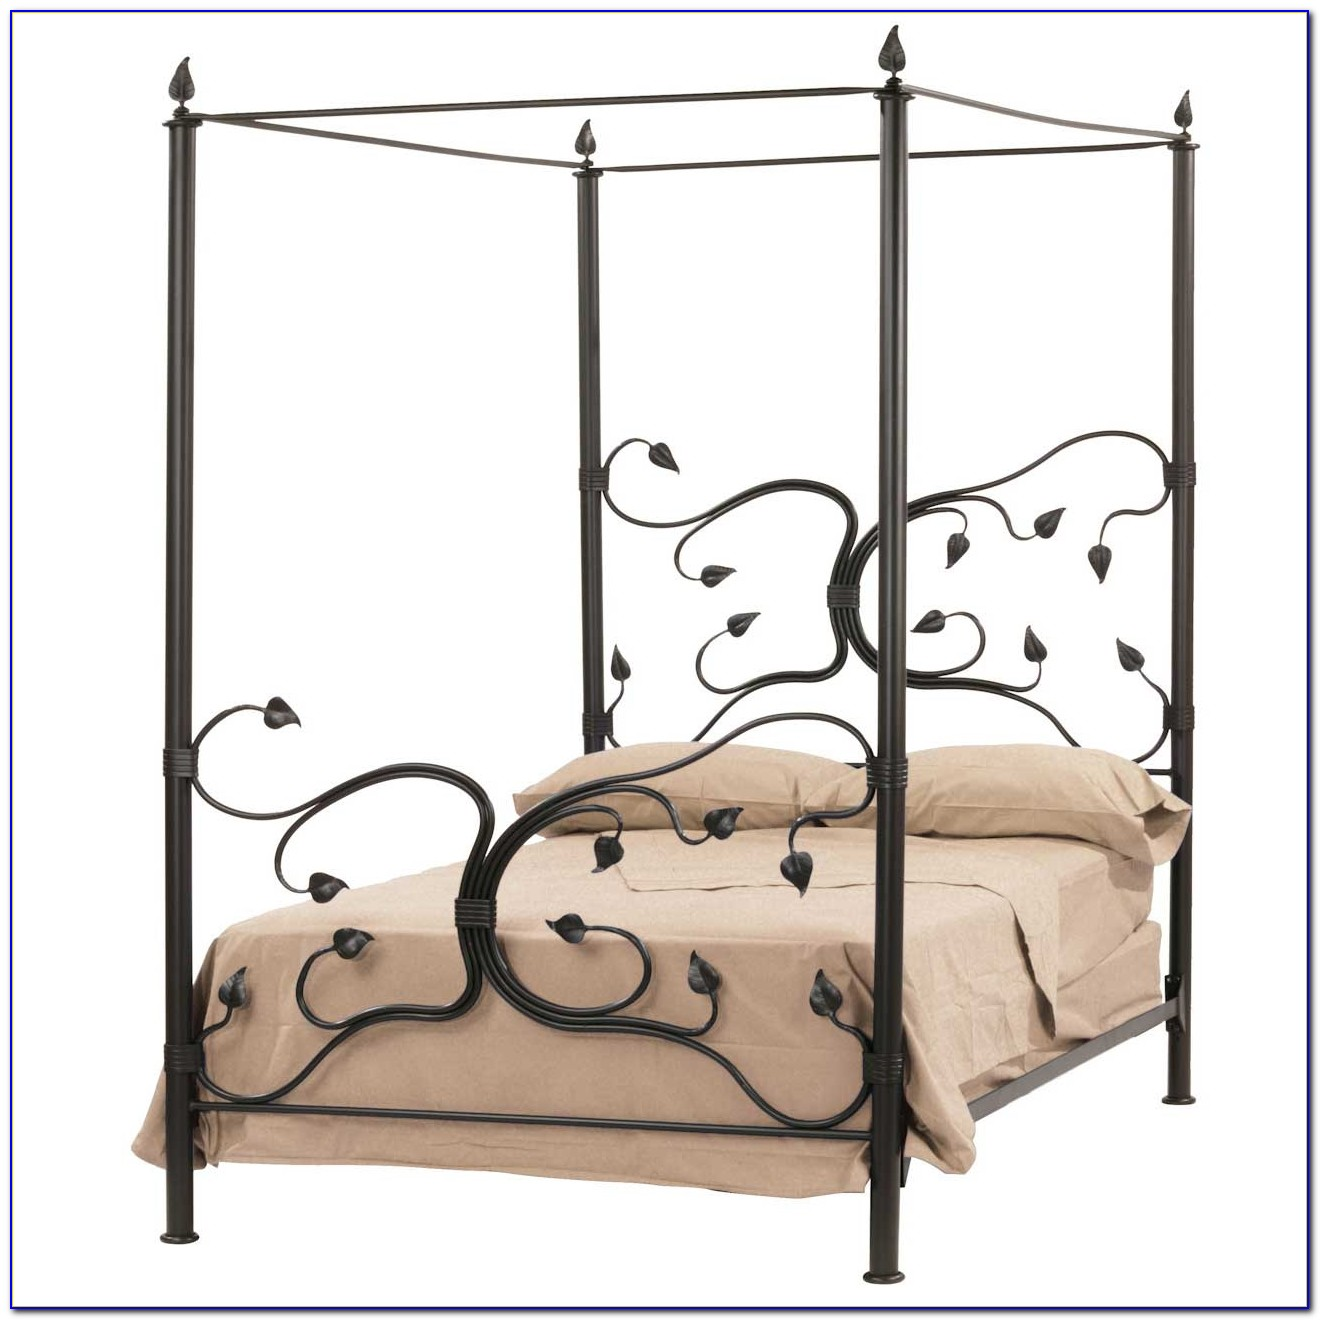 Wrought Iron Bed Frame Vintage